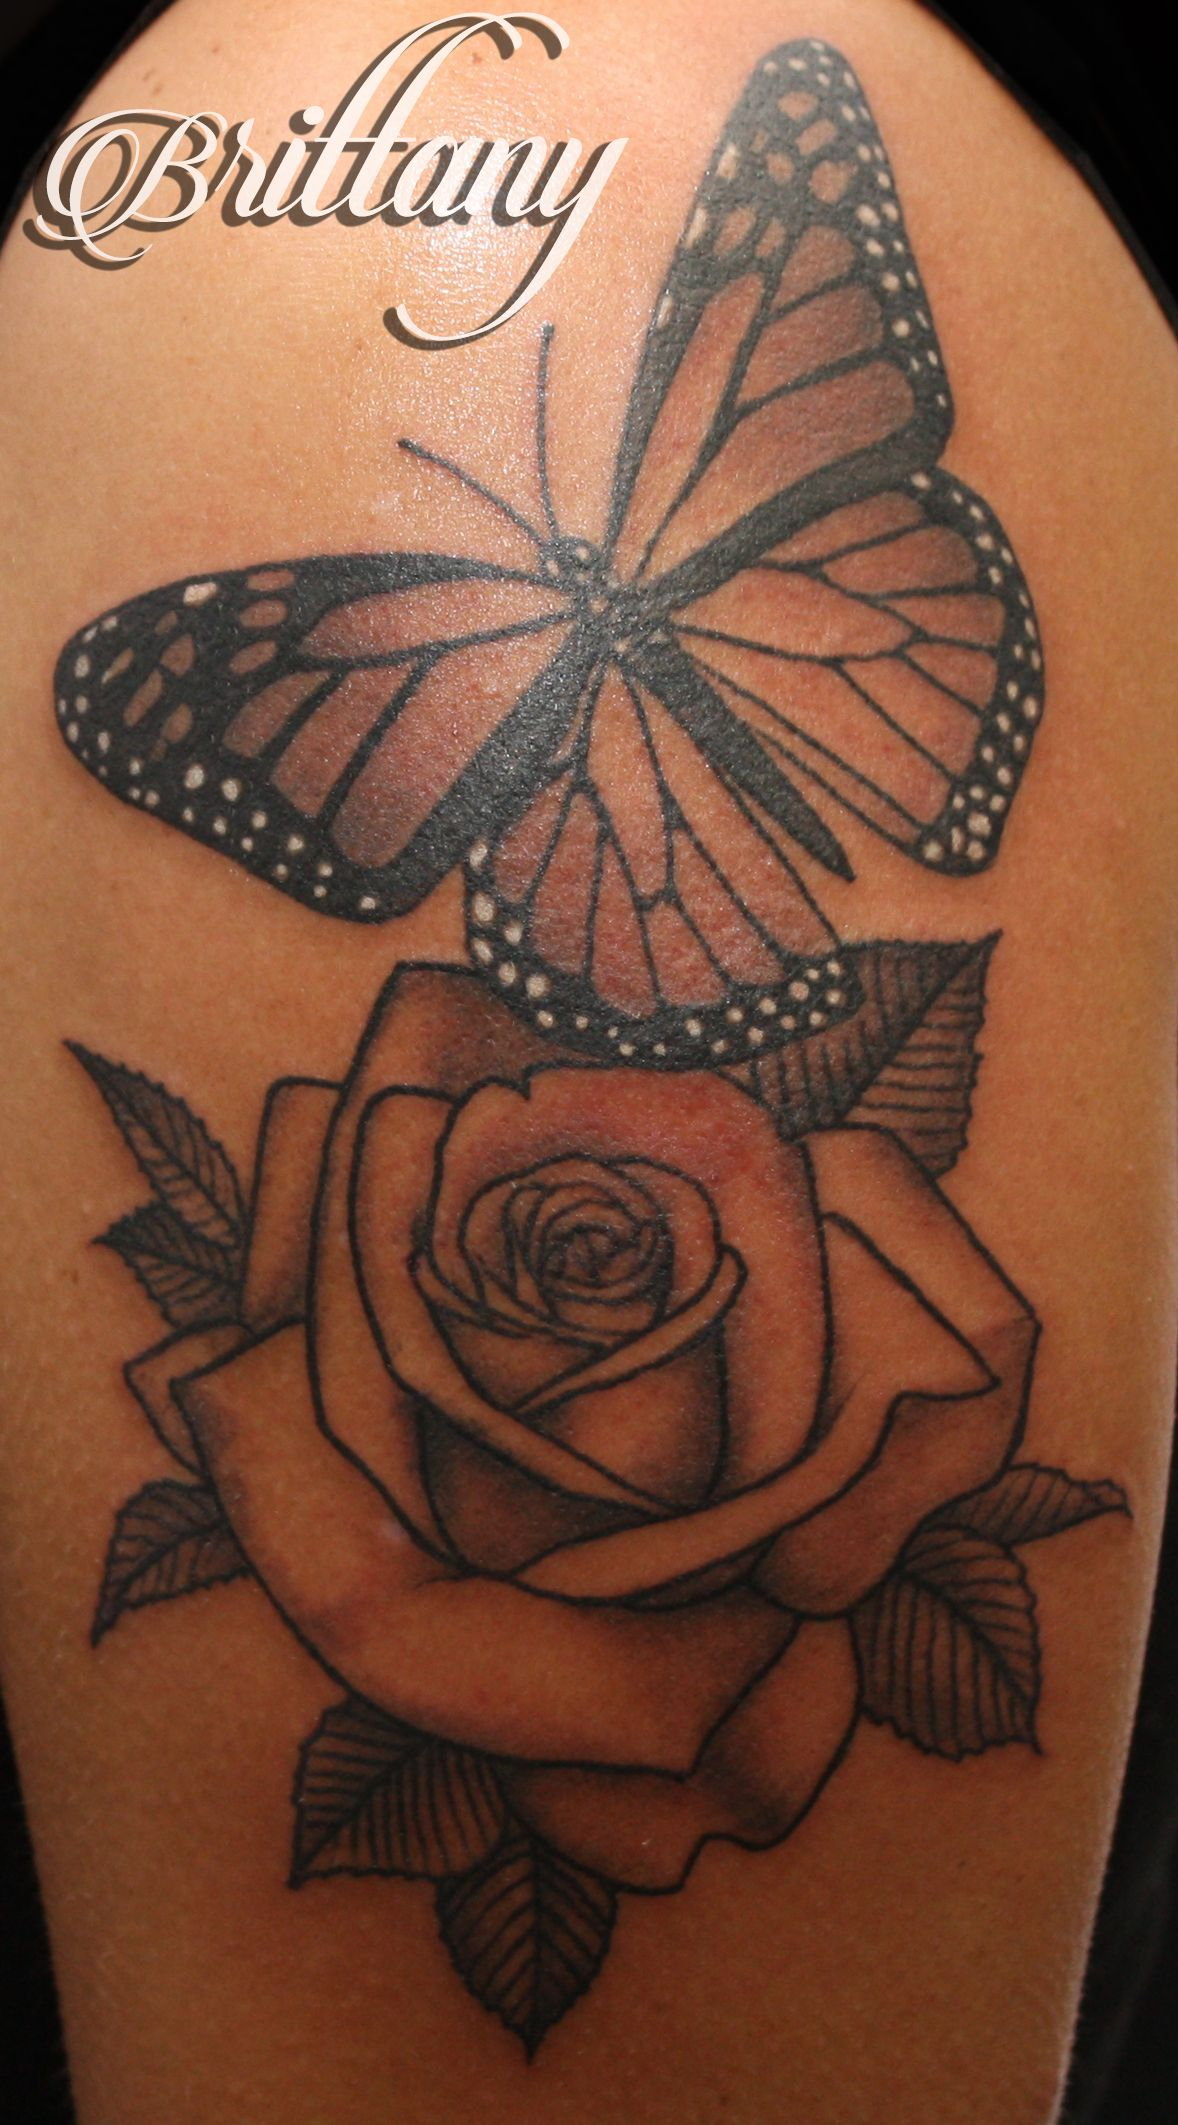 Butterfly Rose Tattoo Monarch Butterfly Black And Grey Skinny Boy